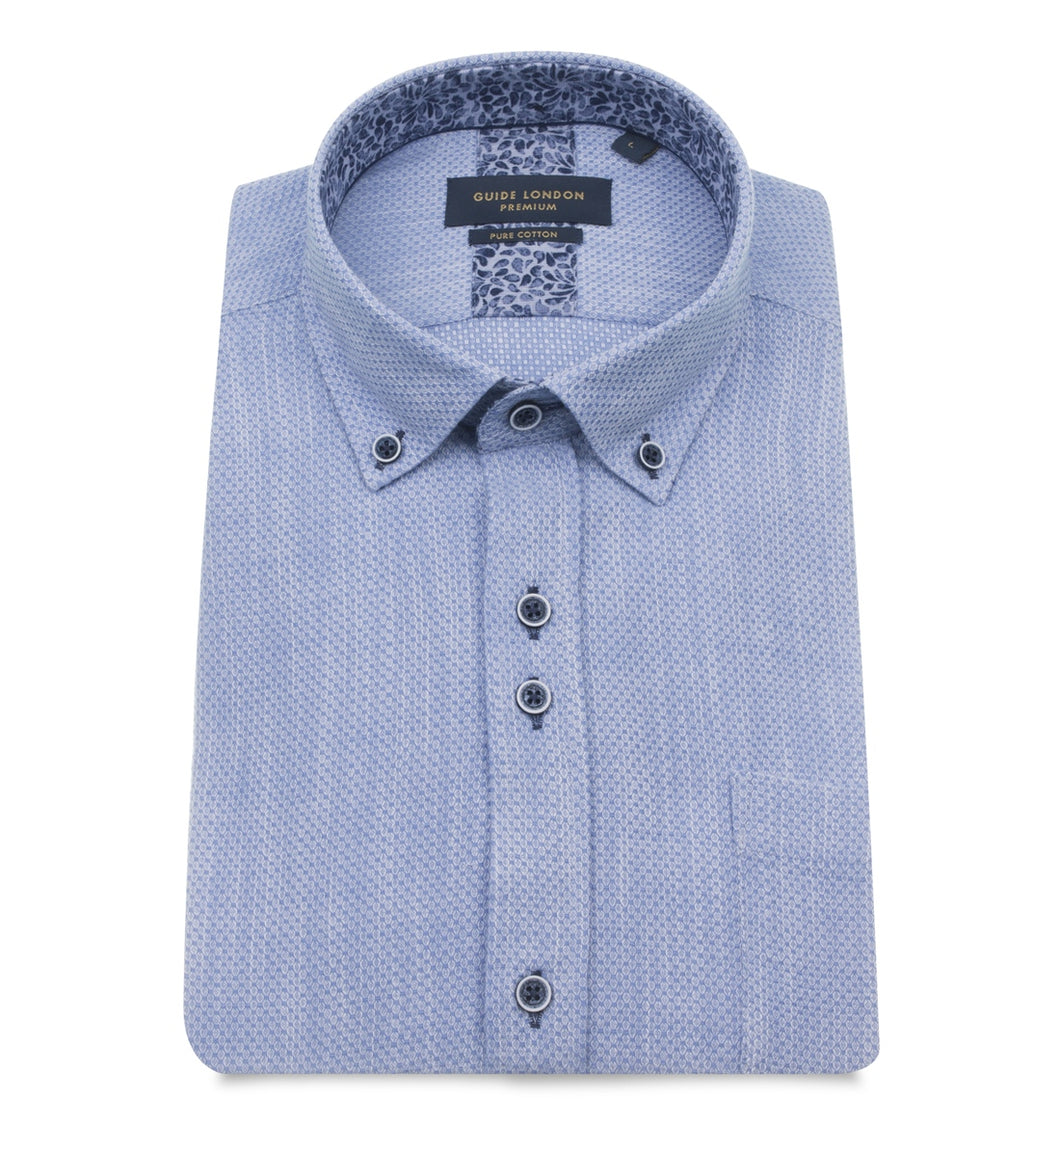 Guide London Textured Short Sleeve Shirt Sky